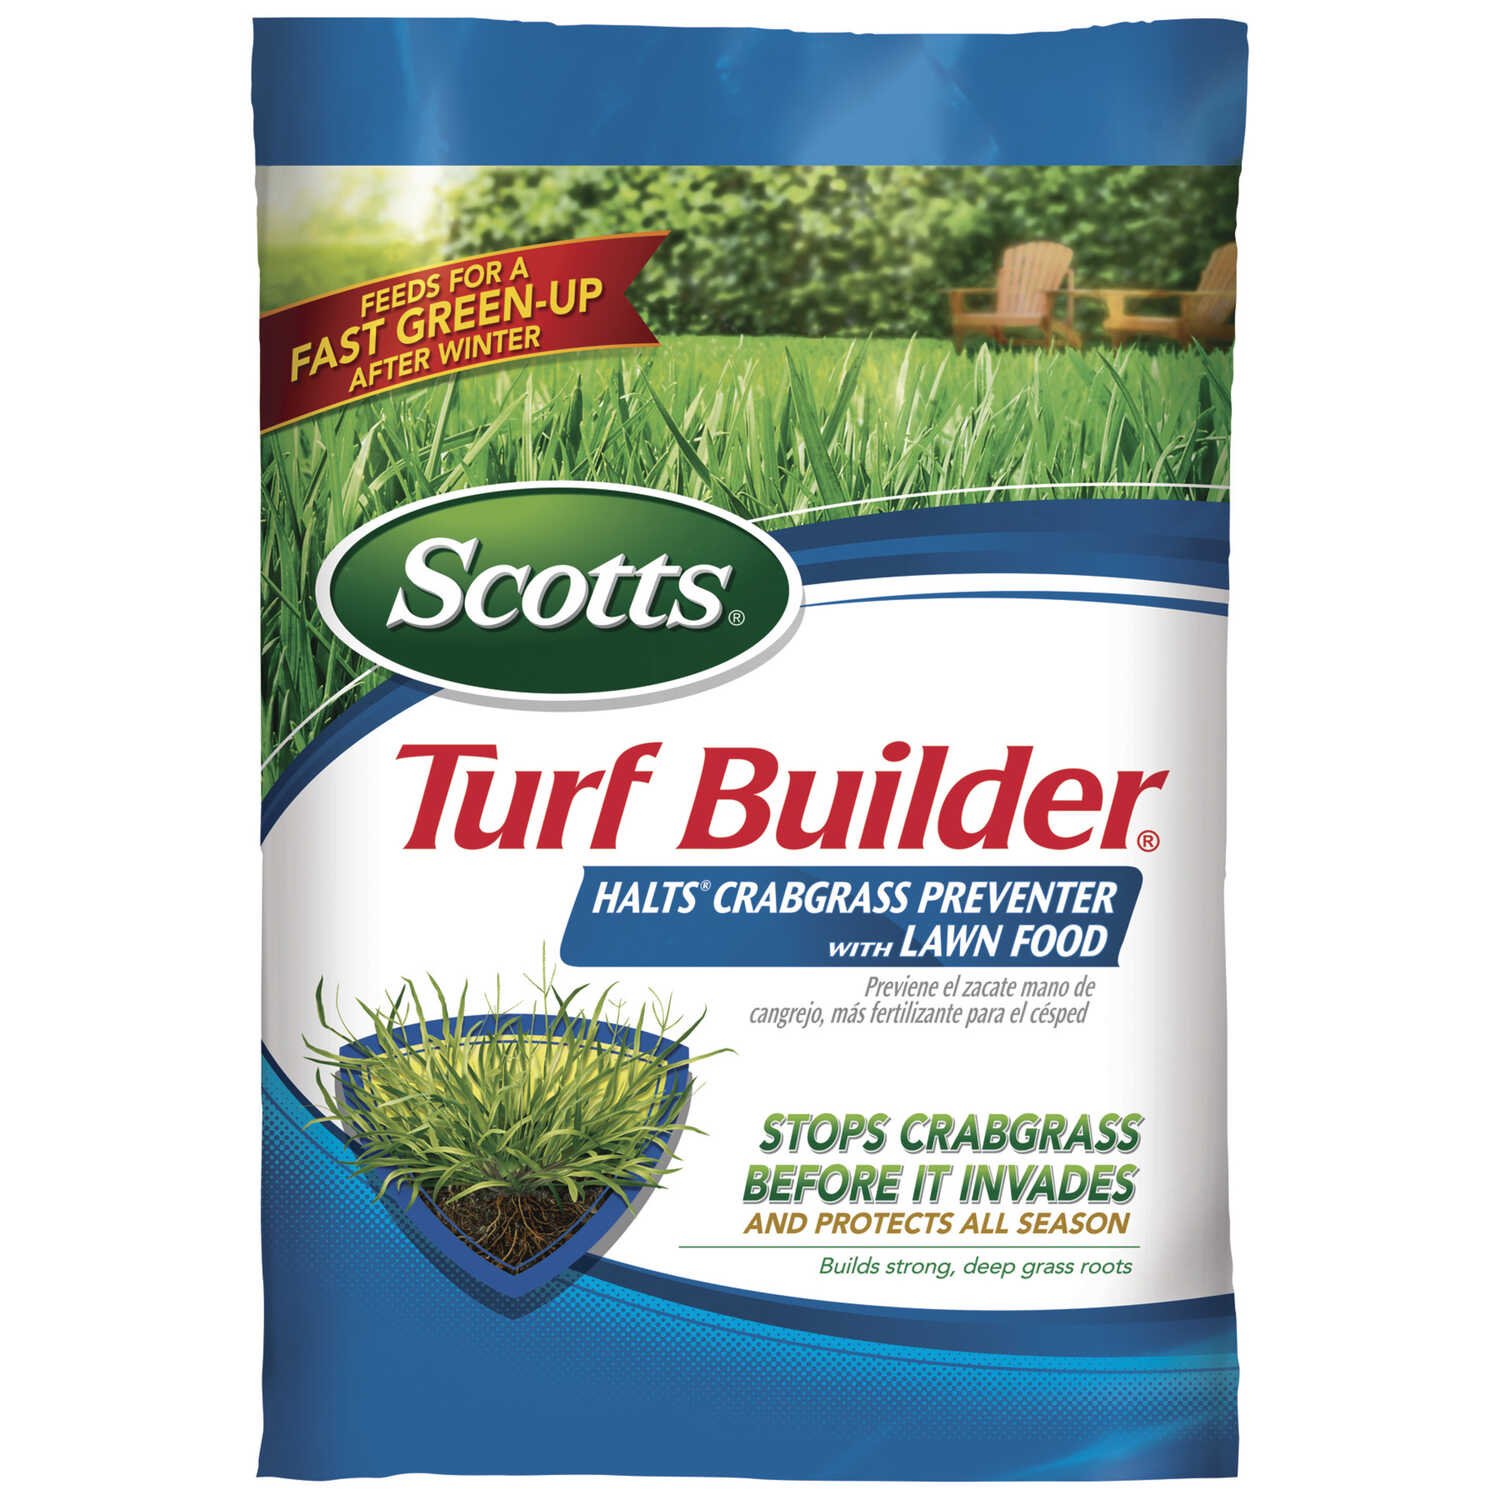 Scotts  Turf Builder  30-0-4  Crabgrass Preventer with Fertilizer  For All Grass Types 13.35 lb. 500